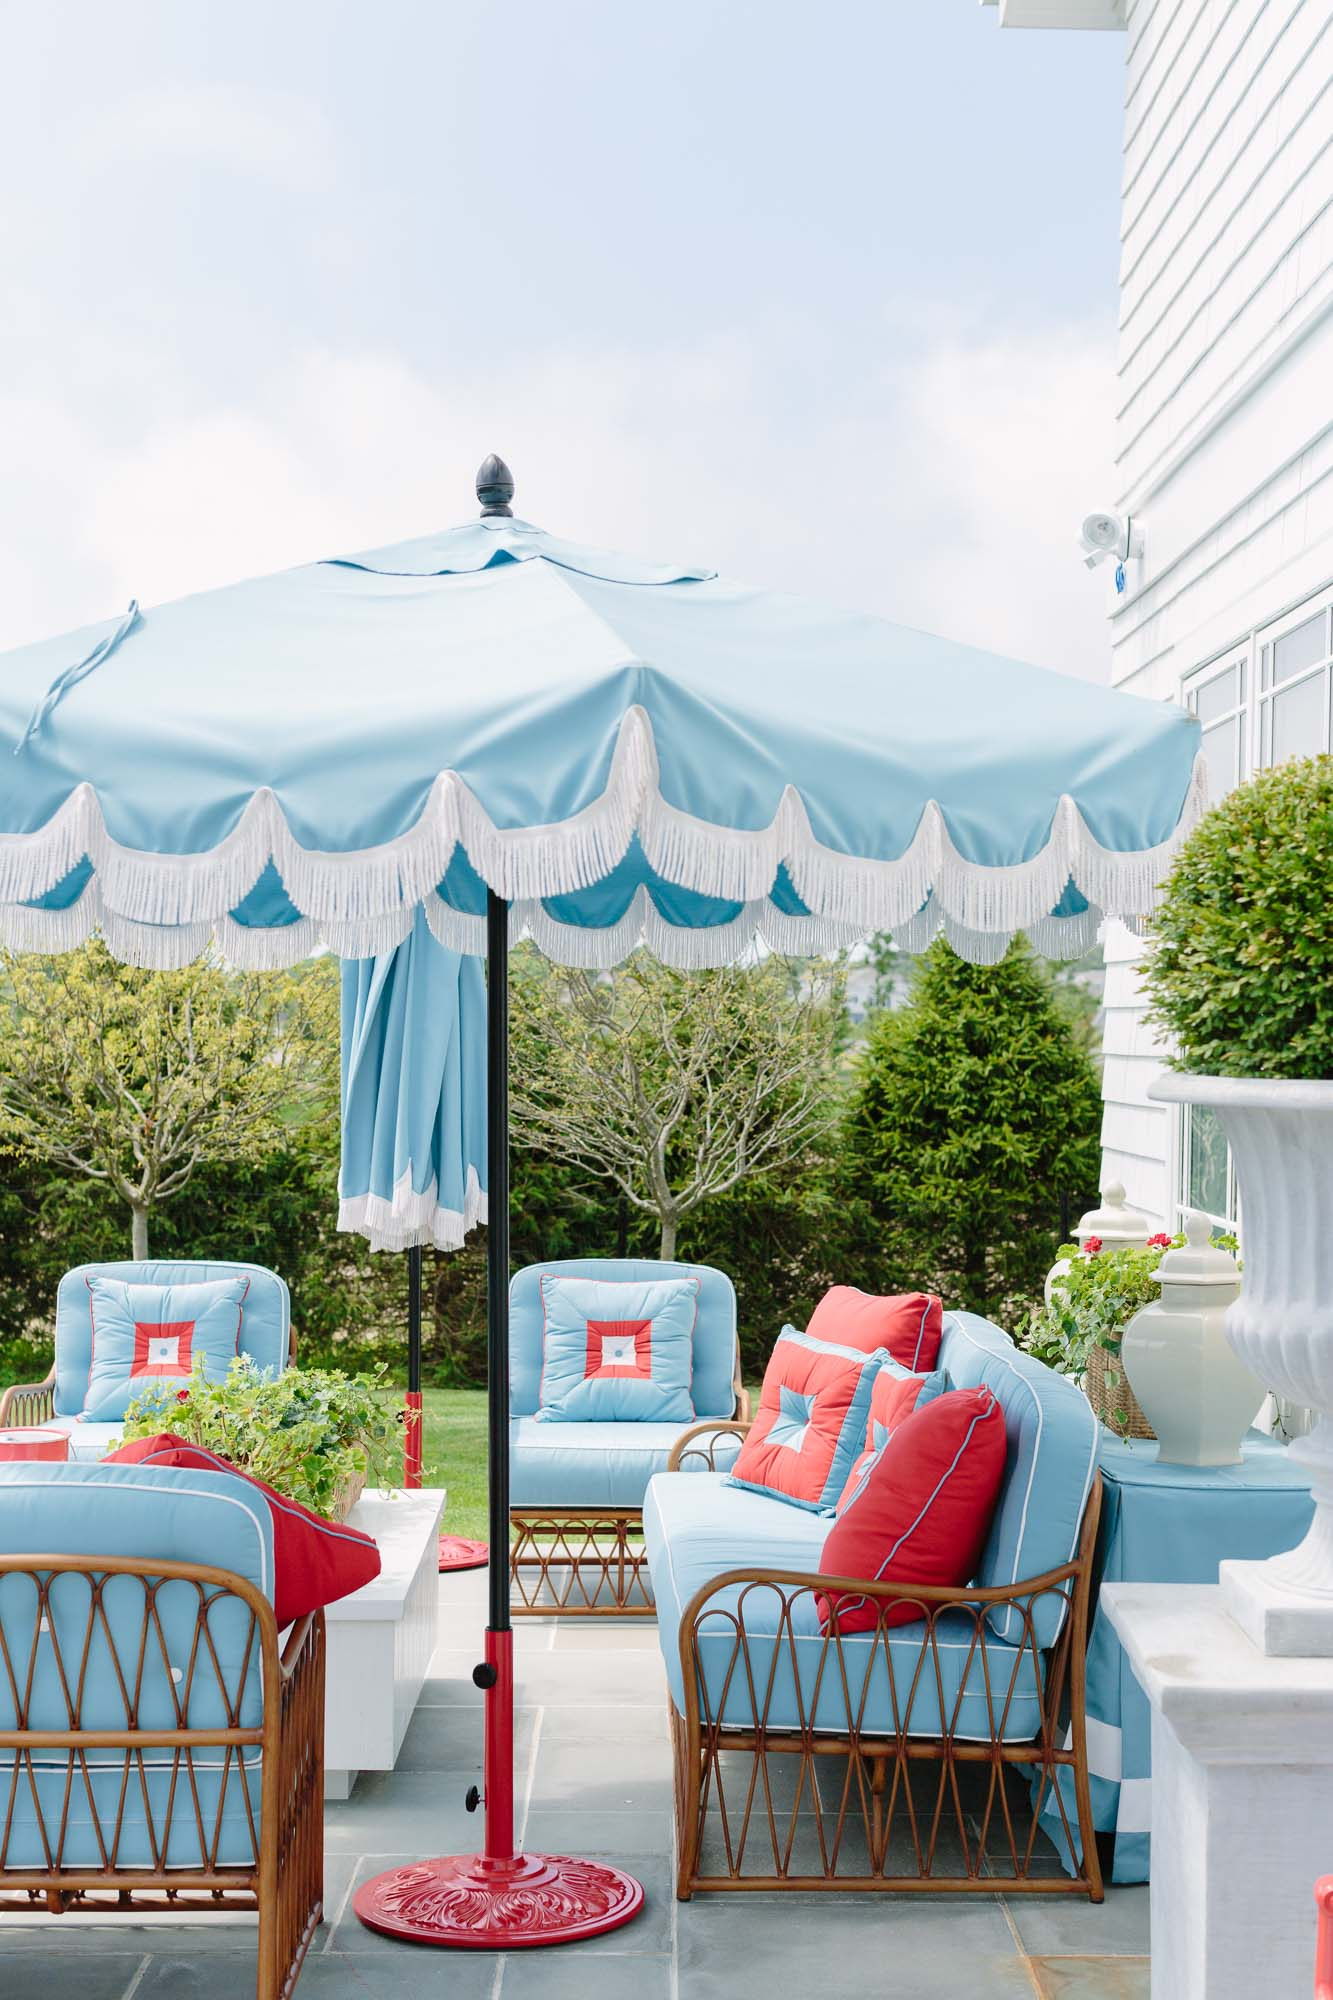 2019 Hampton Designer Showhouse featured by top US style blog, York Avenue: image of Danielle D. Rollins outdoor space at the 2019 Hampton Designer Showhouse